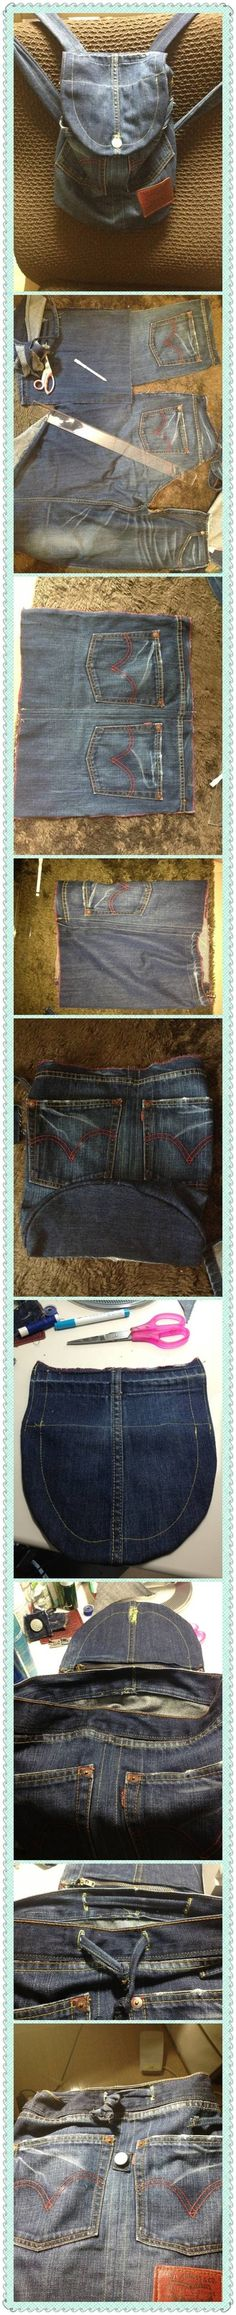 DIY Old Denim Backpack denim diy easy crafts diy ideas diy crafts do it yourself…